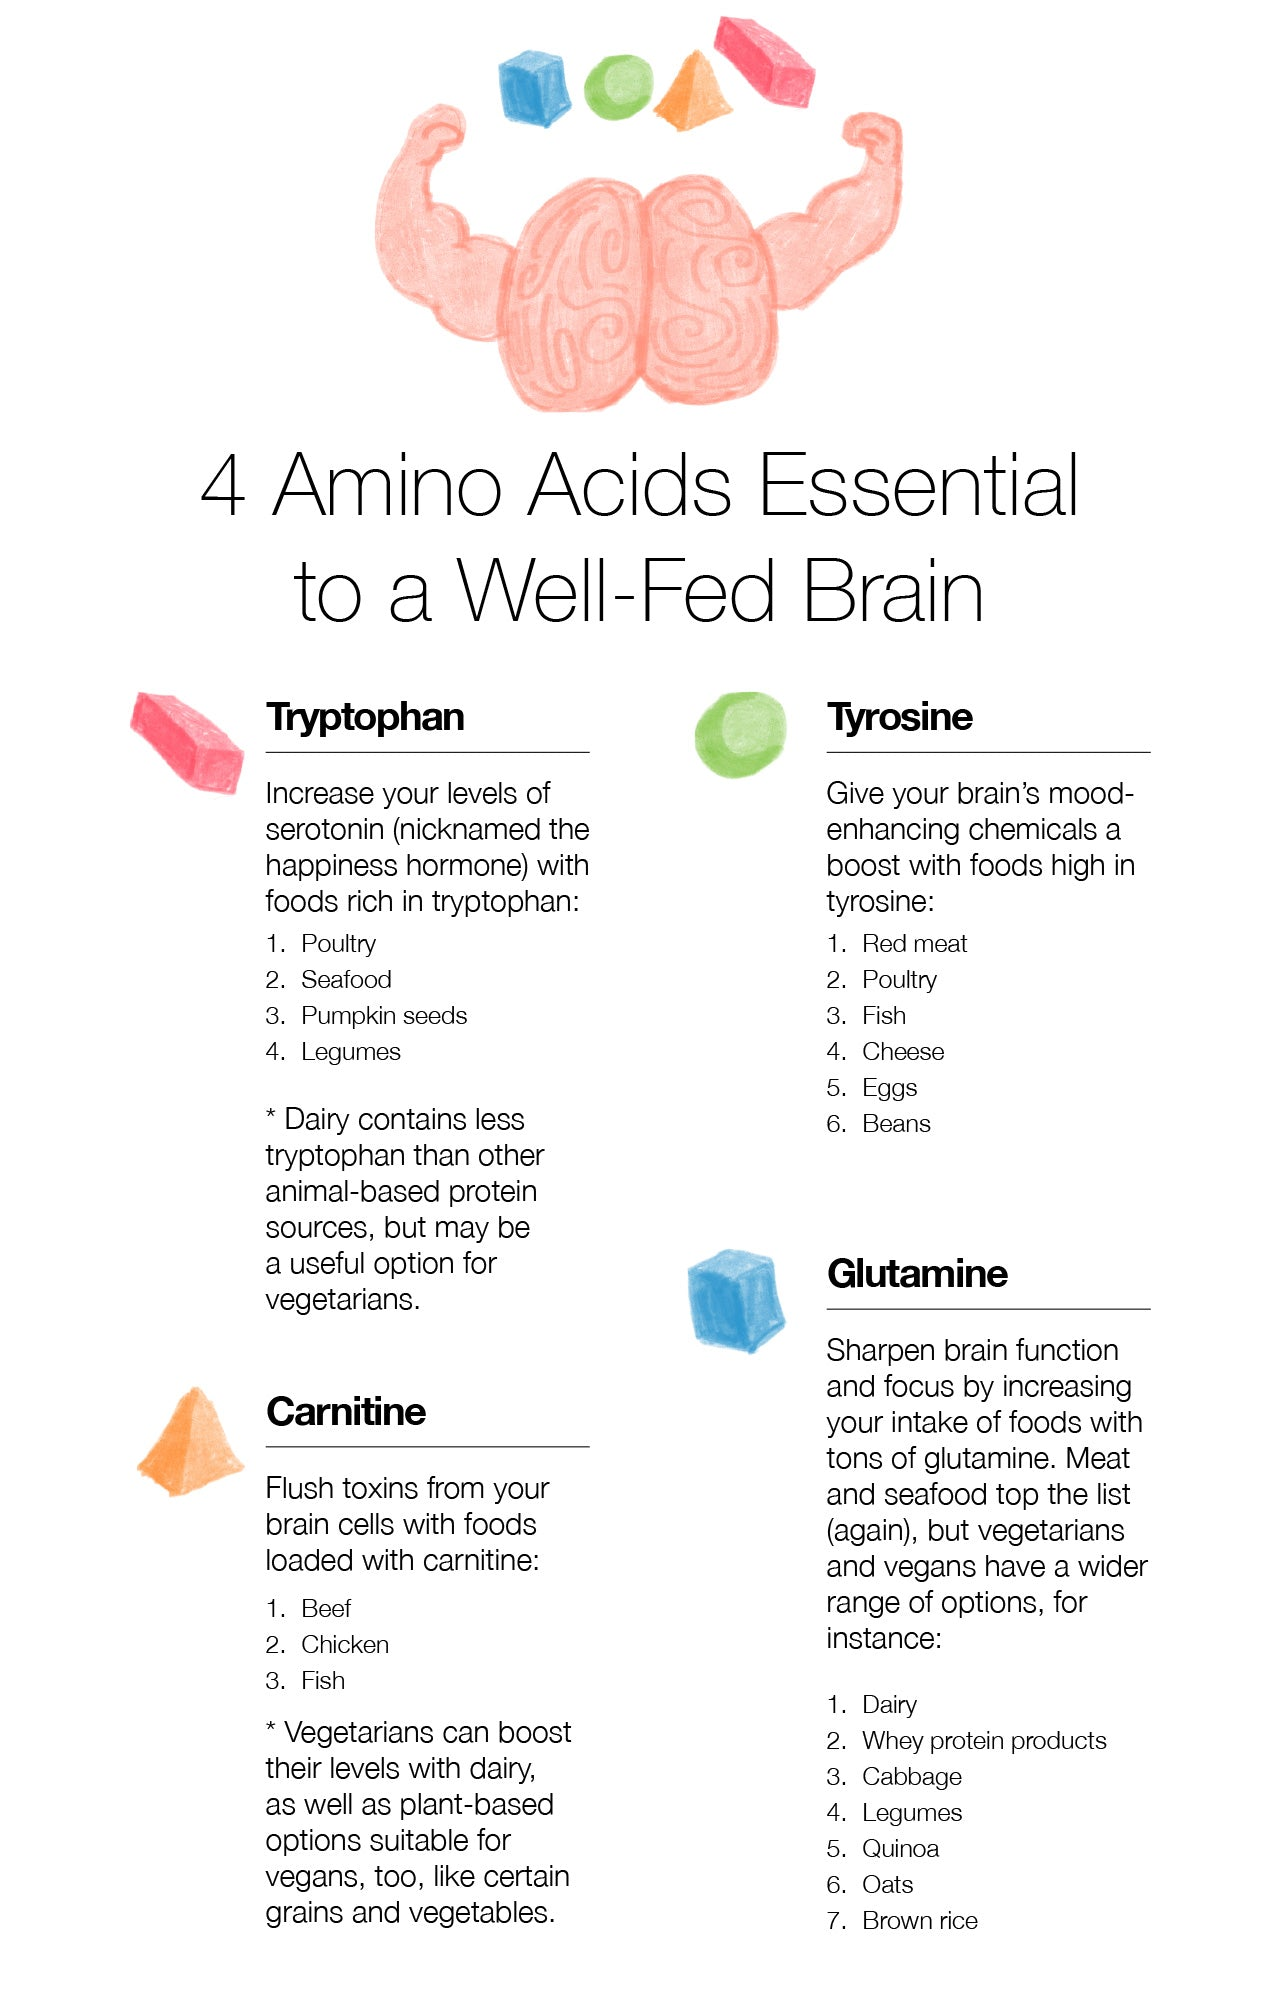 4 Amino Acids Essential to a Well-Fed Brain